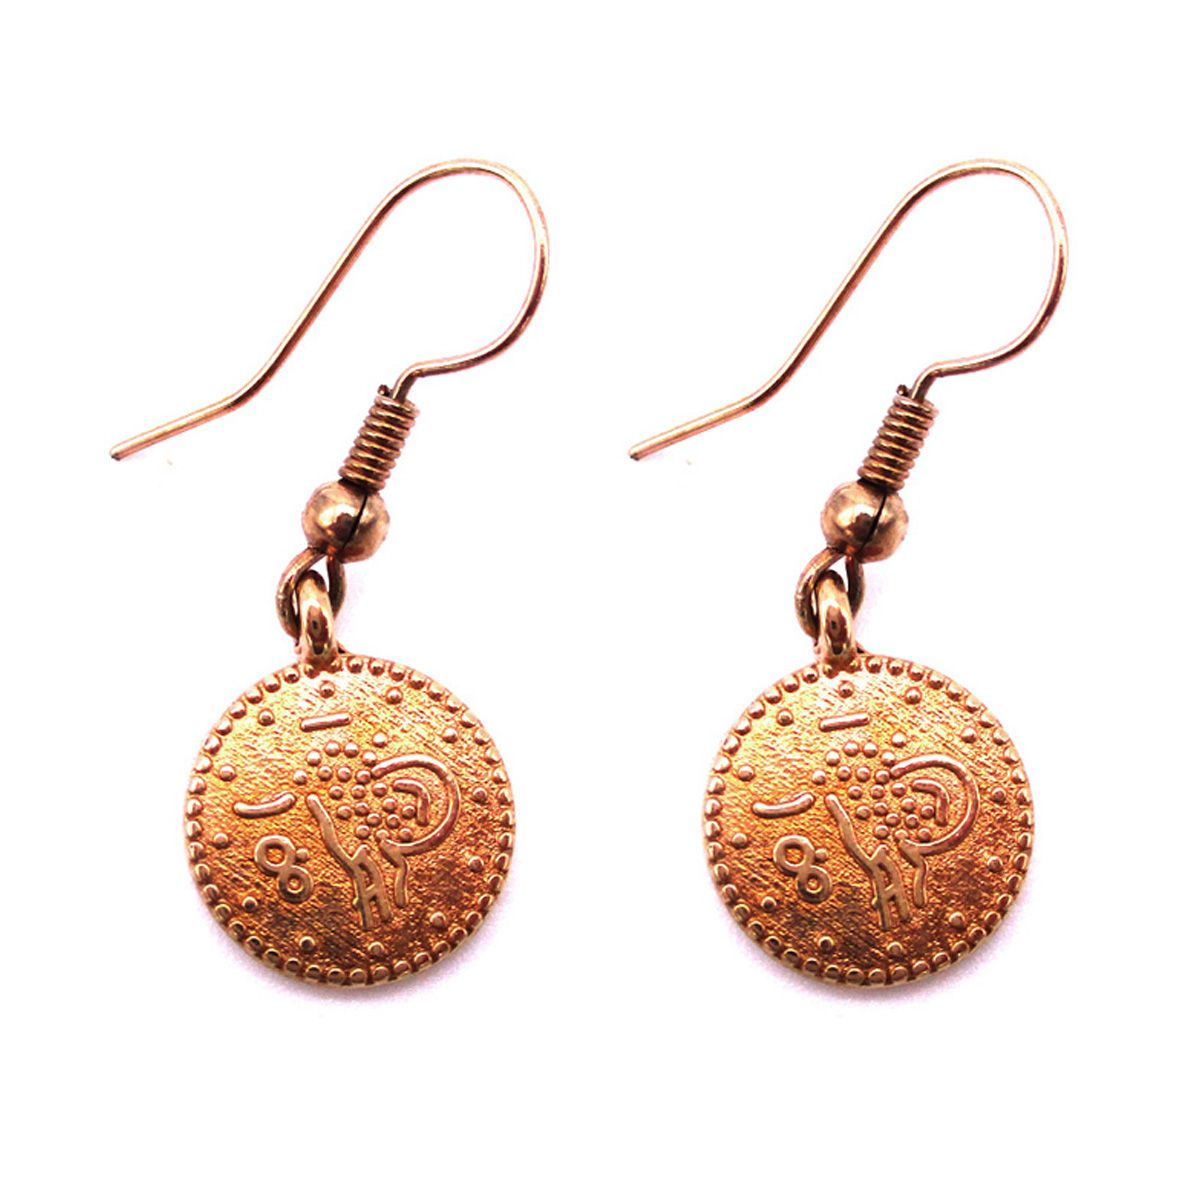 Cleopatra Coin Earrings